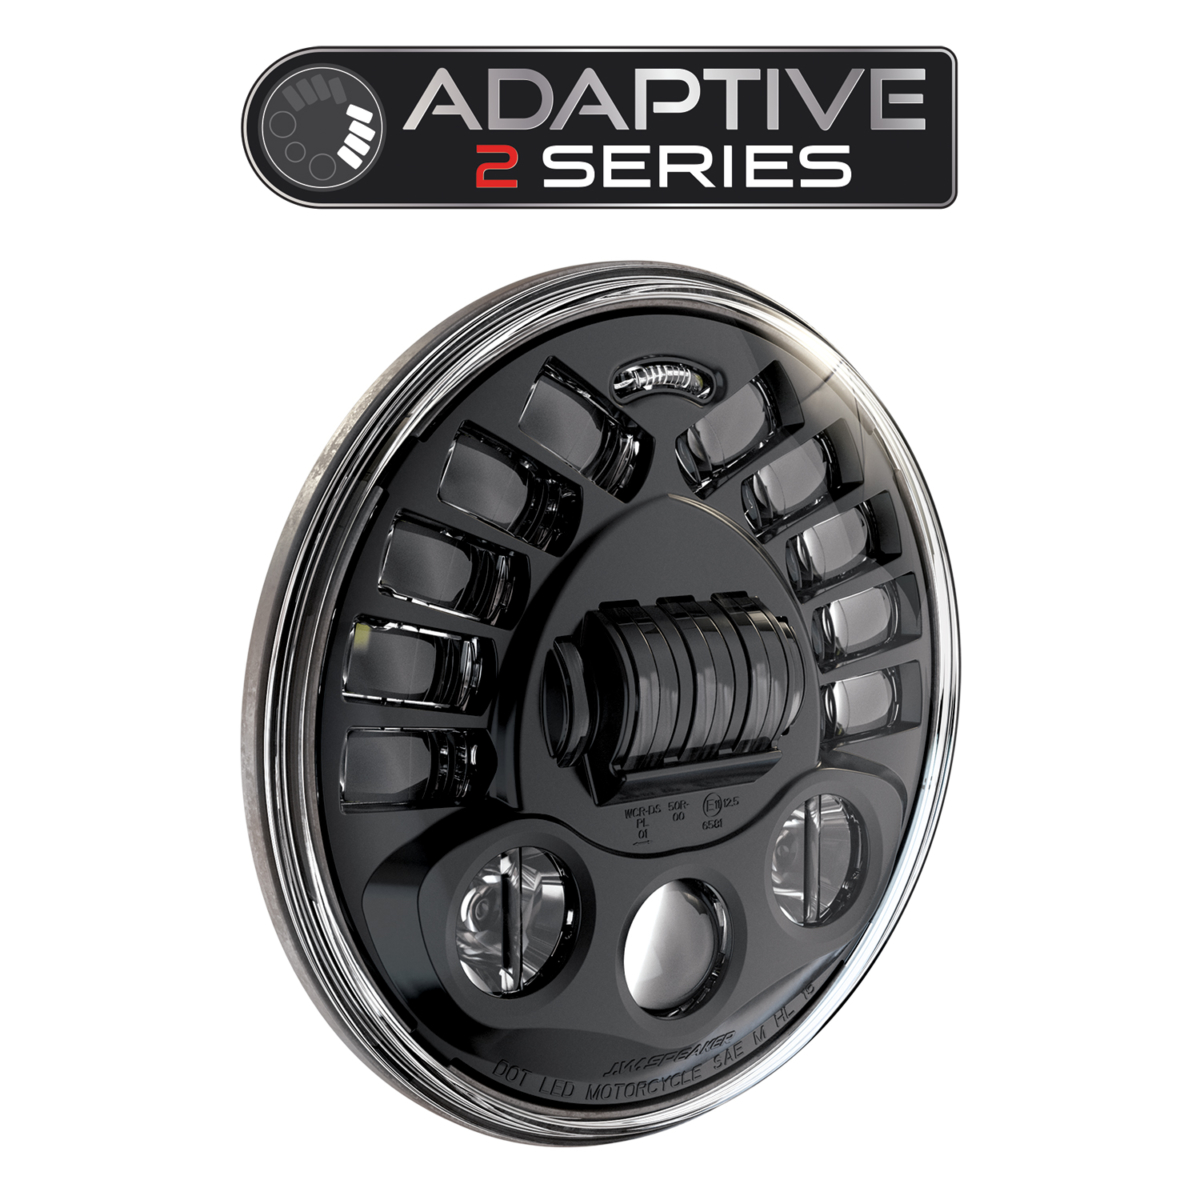 Adaptive LED Motorcycle Headlights – Model 8790 A2